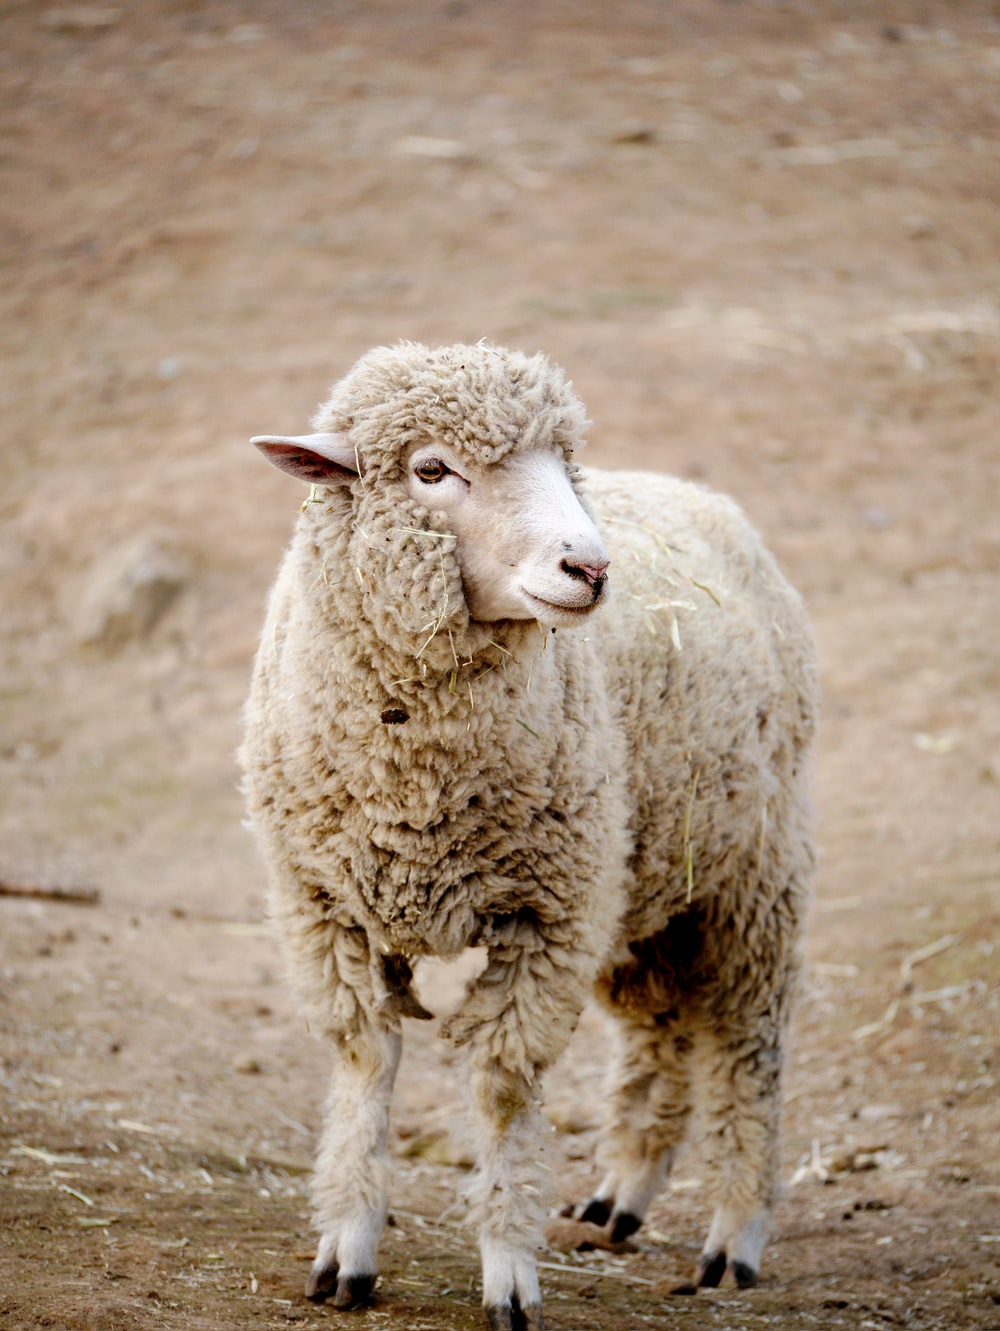 white sheep on brown field during daytime